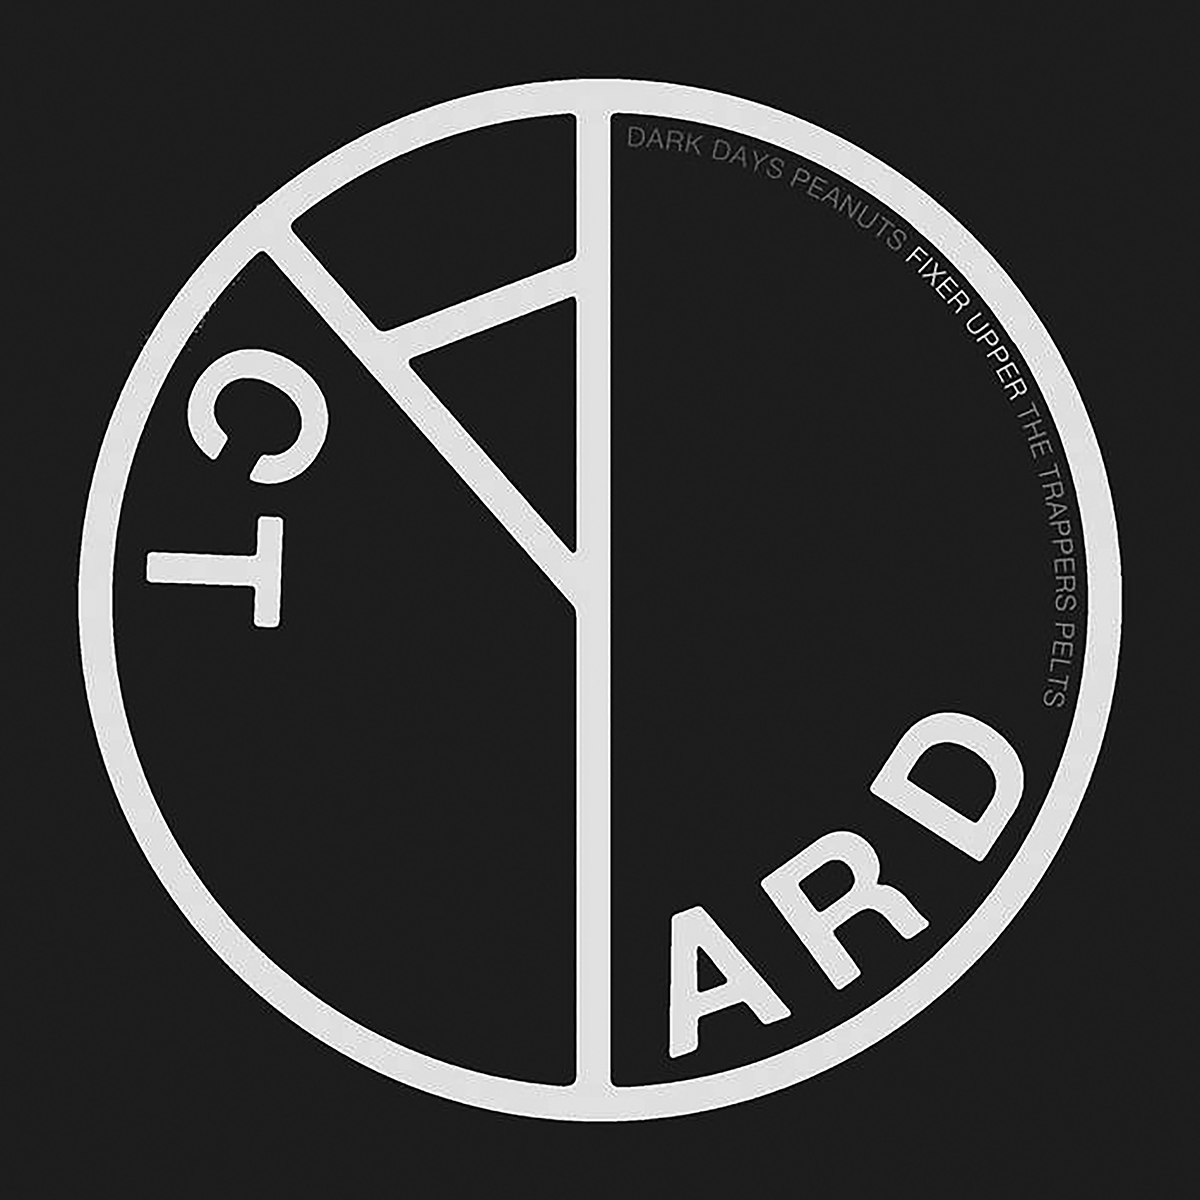 """Album cover for Dark Days EP by Yard Act. It's a black and white image of a circle that sort of resembles a peace sign. The outline of the circle is white and everything else is black. Inside the circle reads """"Yard Act,"""" with the """"Y"""" in yard extending from the top to the bottom, cutting the circle in half, and the """"A"""" in act forming from the """"Y,"""" so """"Act"""" is upside down. There are smaller letter in the top right of the circle that read """"Dark Days Peanuts Fixer Upper the Trappers Pelts."""""""